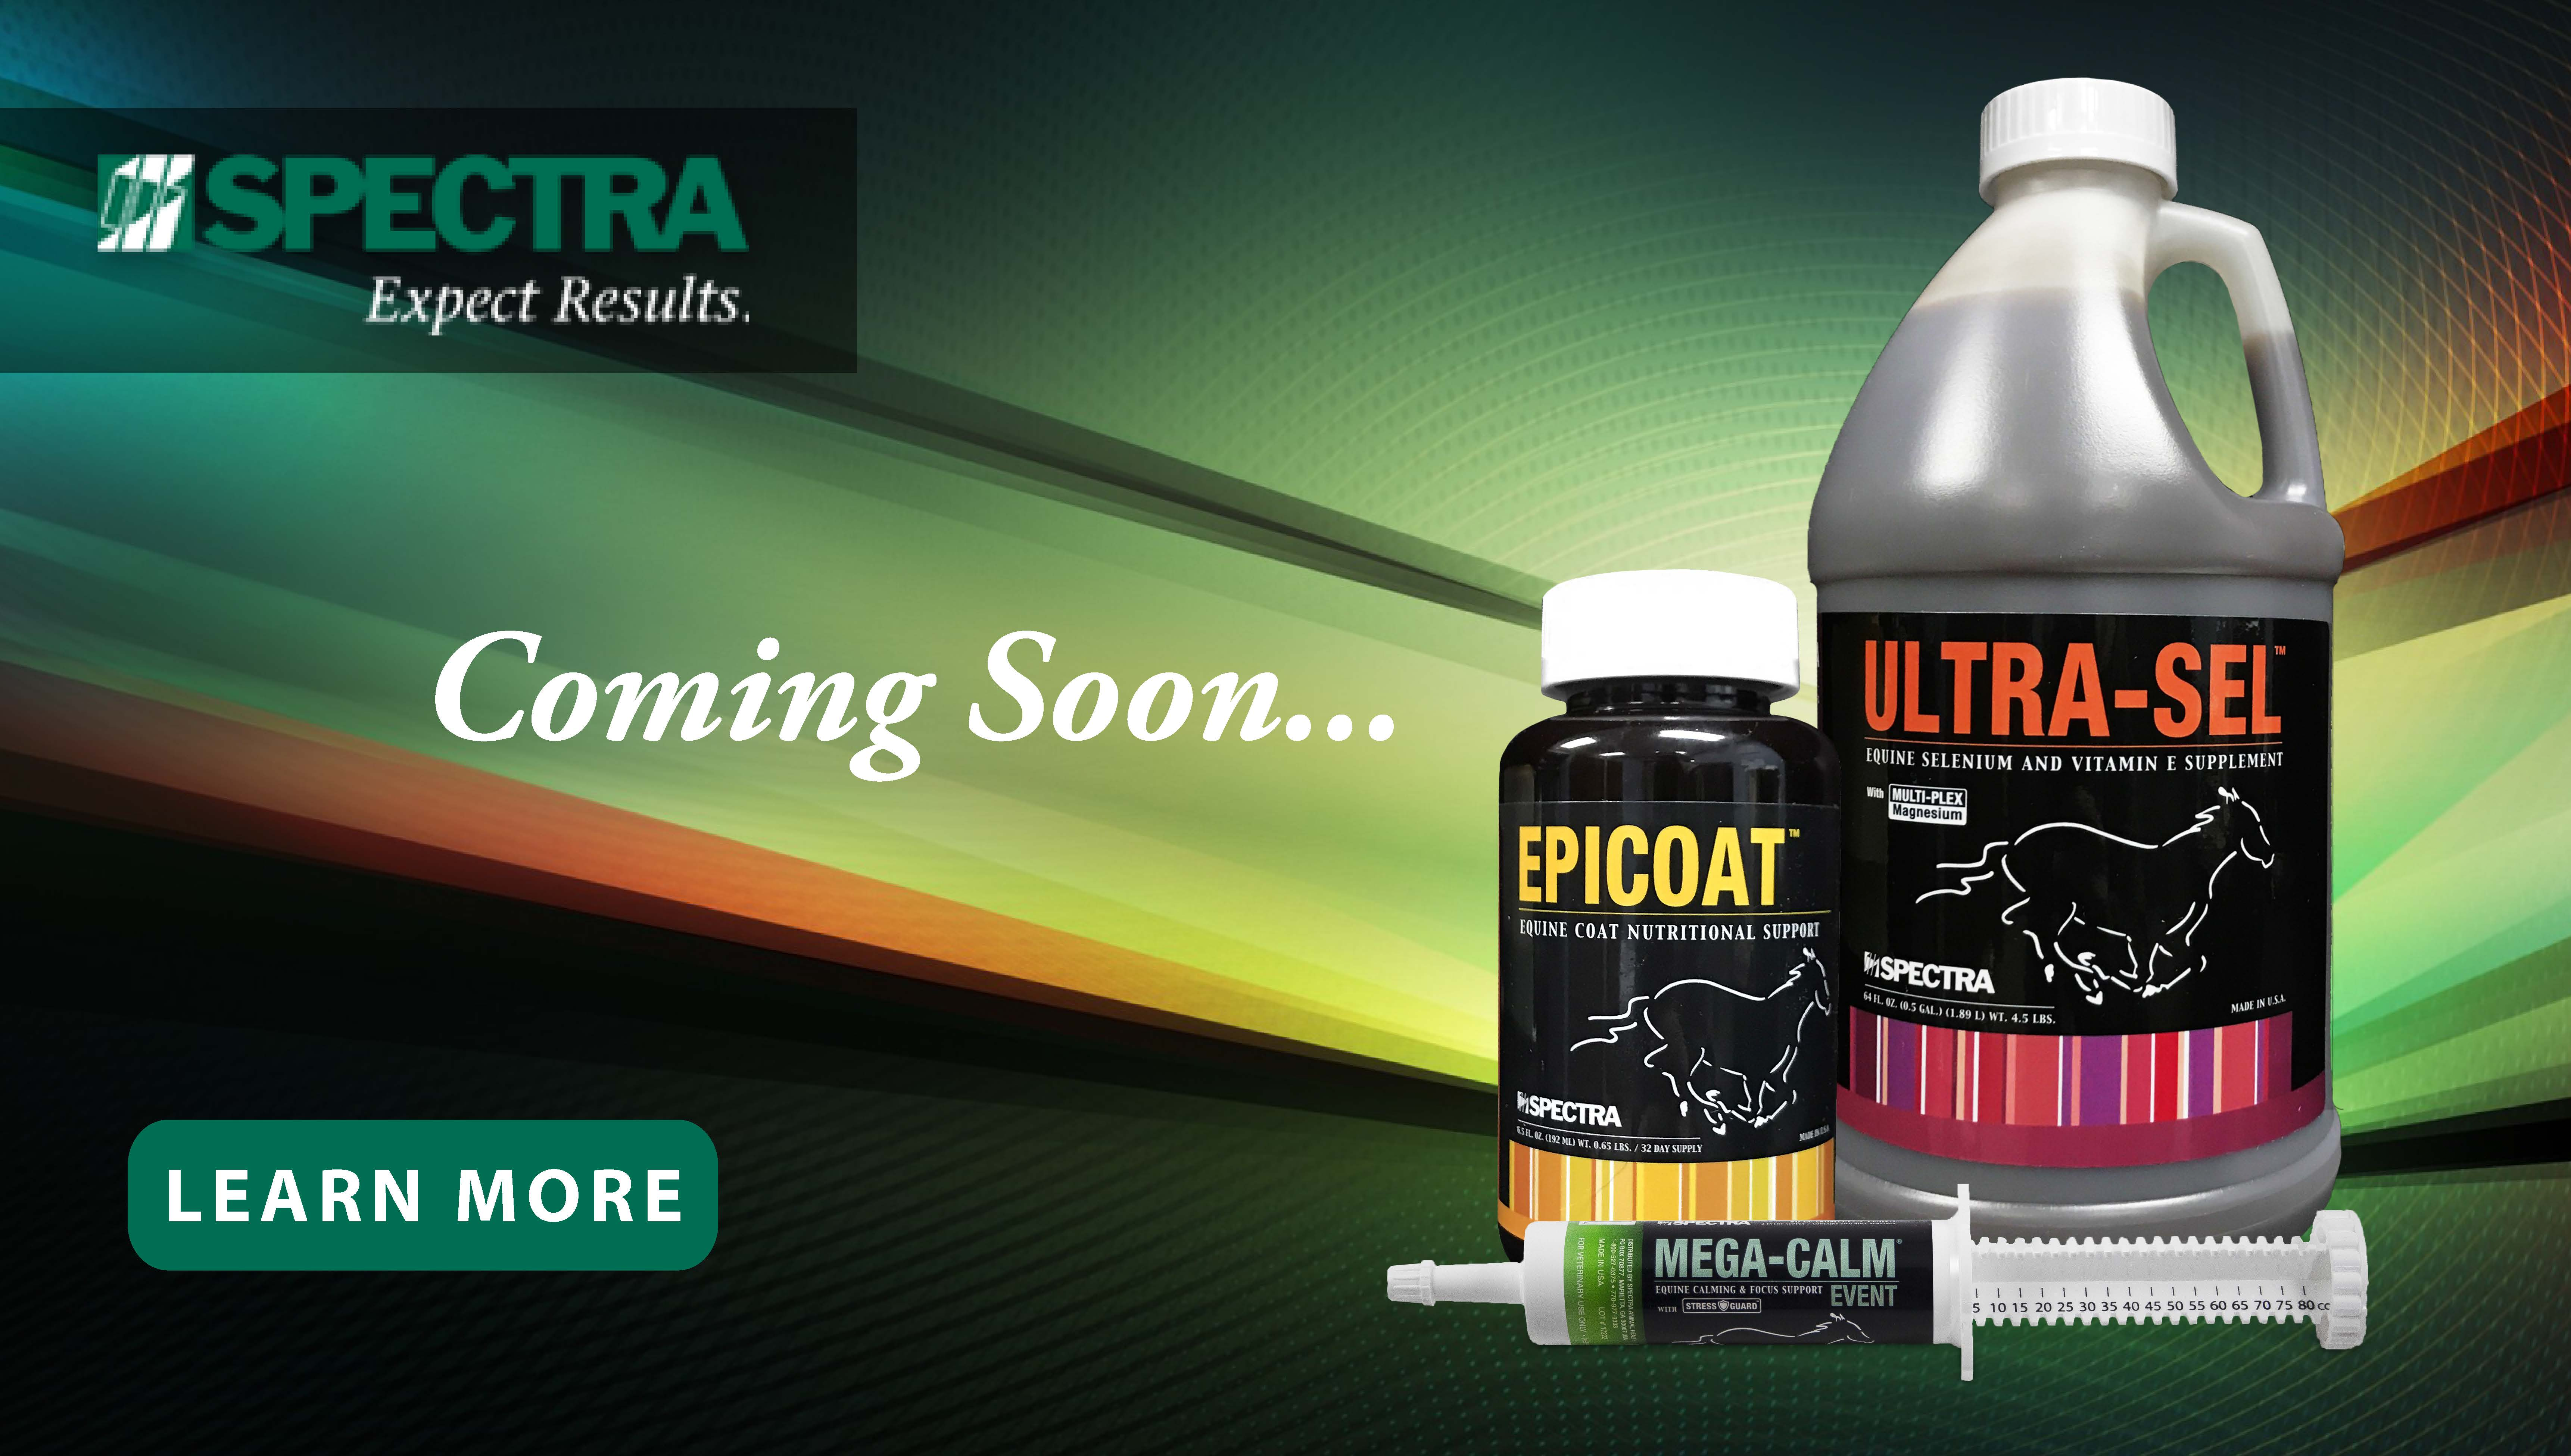 New Products from Spectra at Jacks Inc.